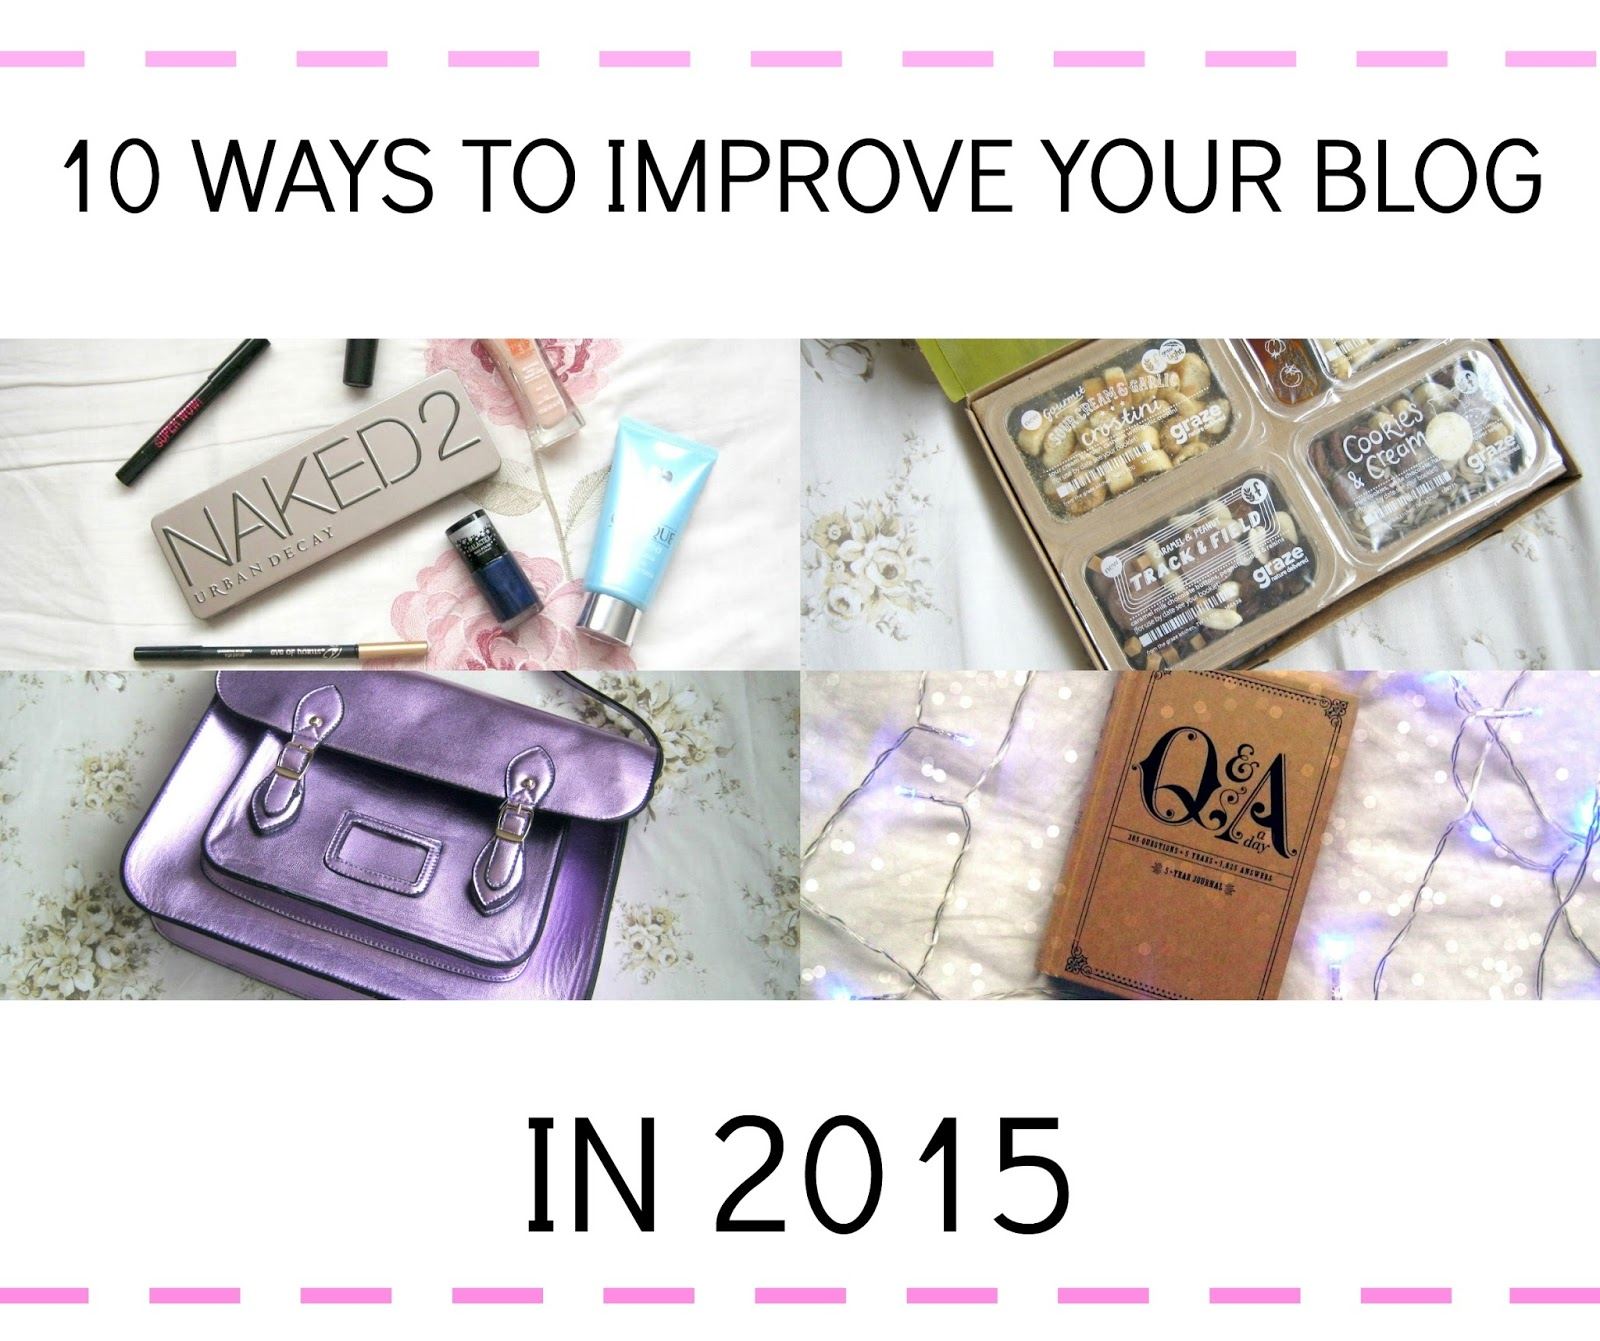 10 ways to improve your blog in 2015. 10 ideas of how to improve your blog this year, gain more readers and boost your views! www.shonalouise.com